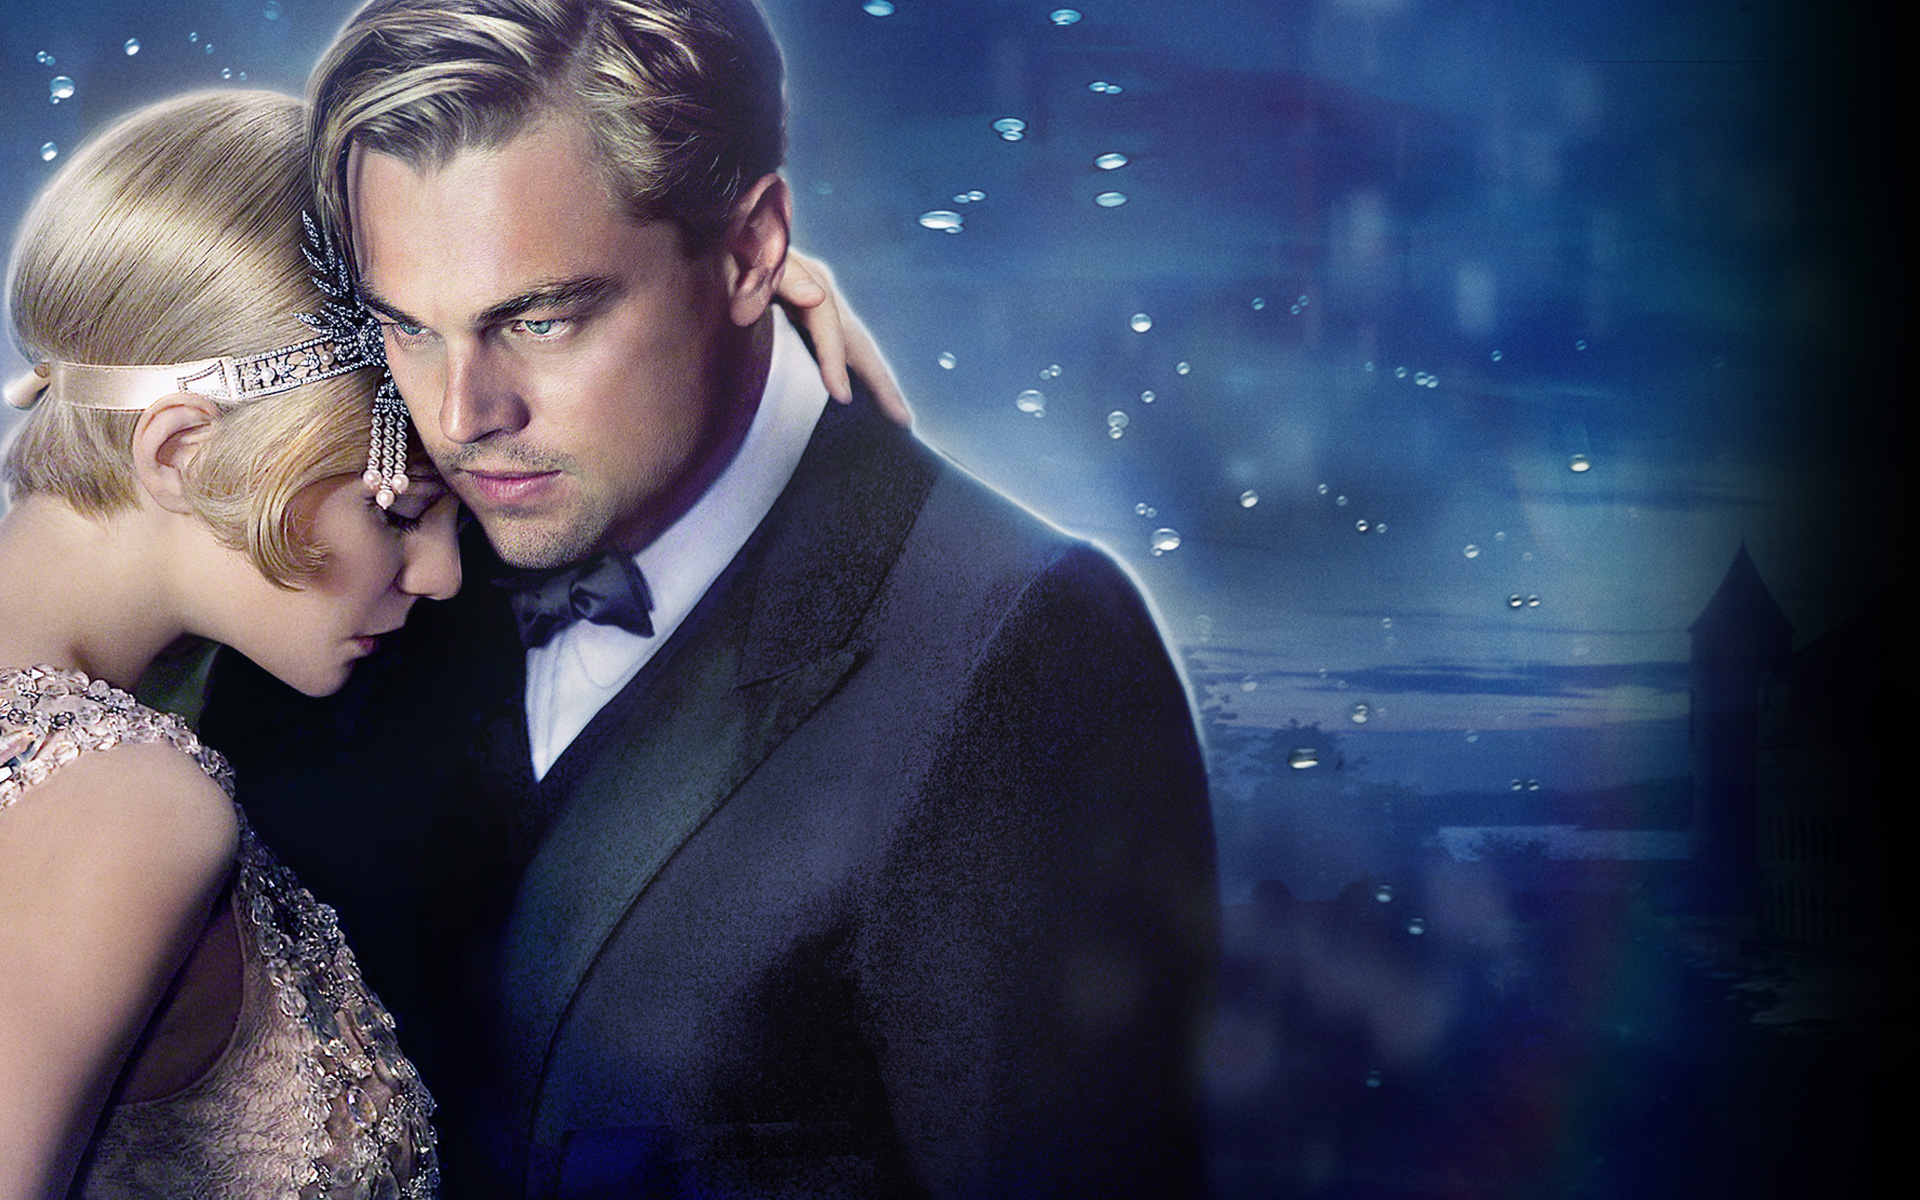 the great gatsby caracter of gatsby i would like to describe the major character and protagonist of the novel «the great gatsby» by francis scott key fitzgerald jay gatsby by name his role is relevant for the main line as the story revolves around him.